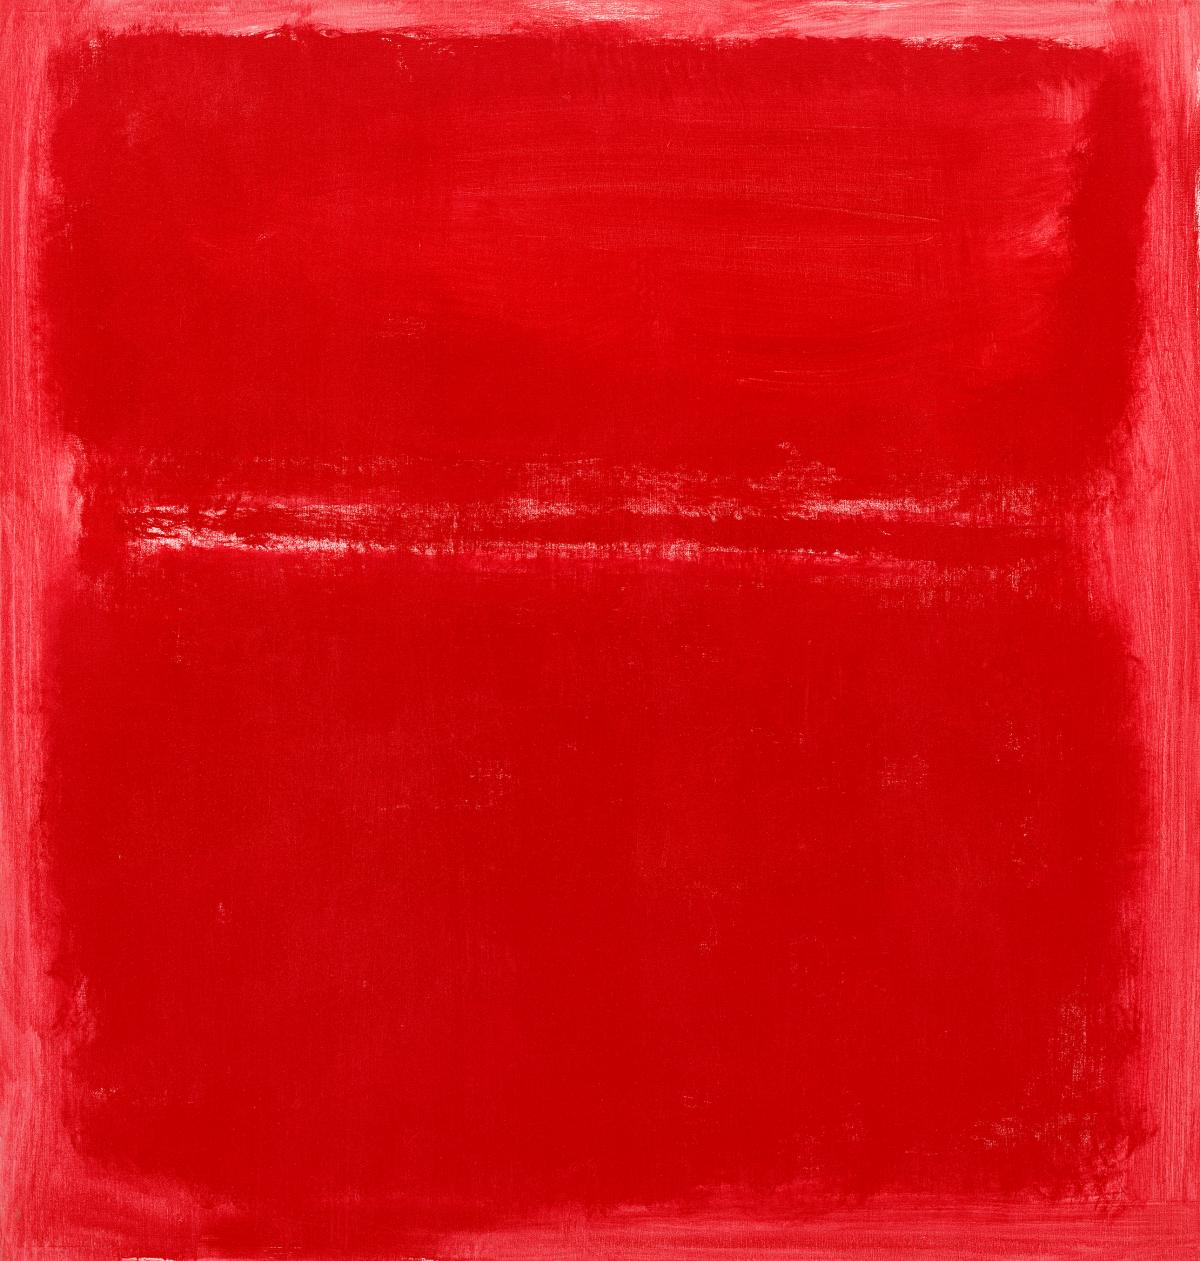 untitled_1970_by_mark_rothko.jpg